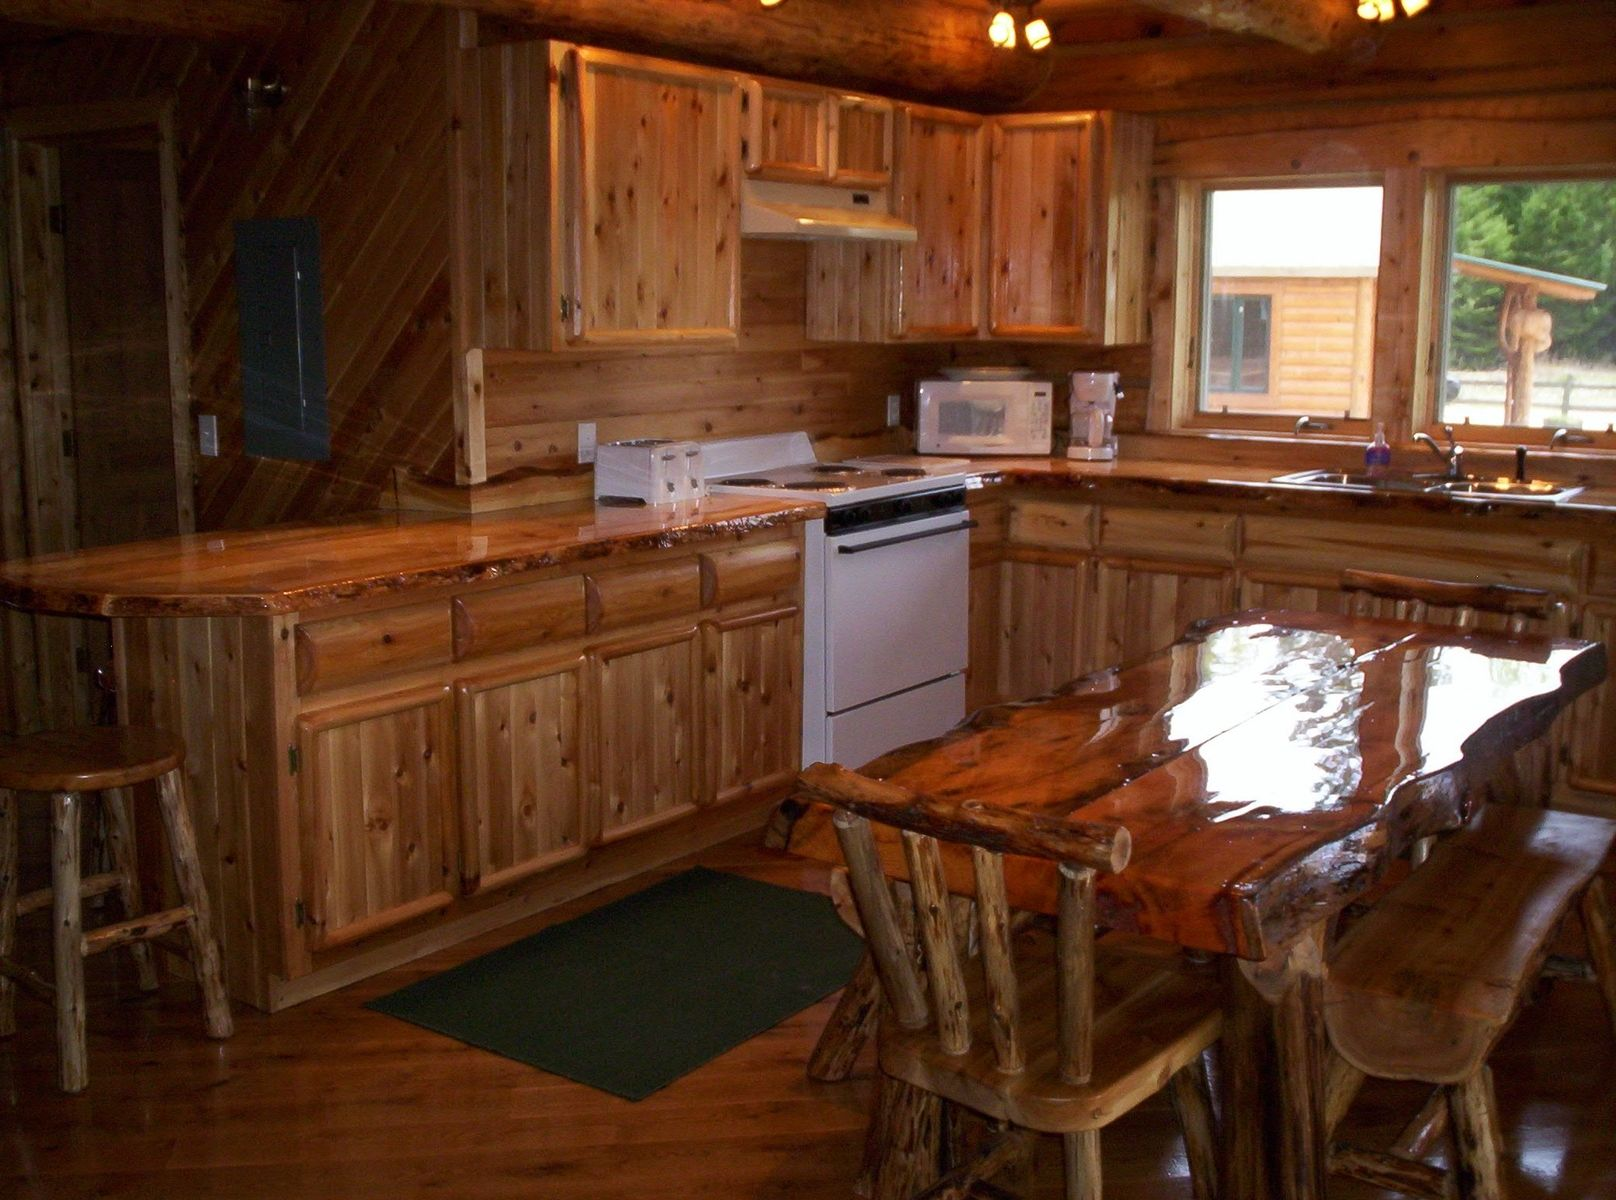 Hand Crafted Custom Rustic Cedar Kitchen Cabinets By King Of The Forest Furniture Custommade